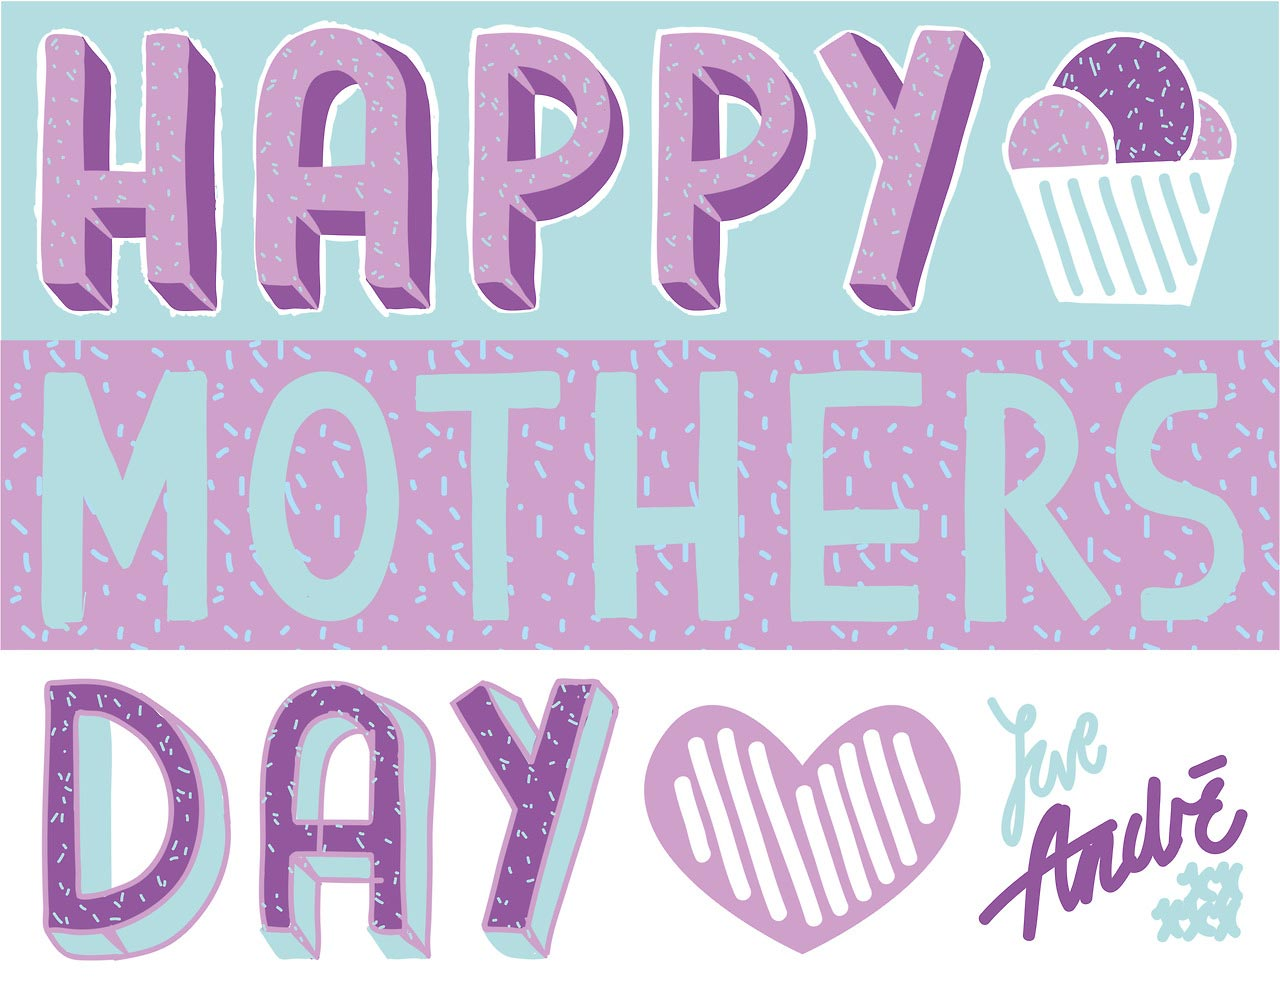 Happy mothers day 2014 pictures hd wallpapers quotes facebook happy mothers day vector image 2 kristyandbryce Image collections